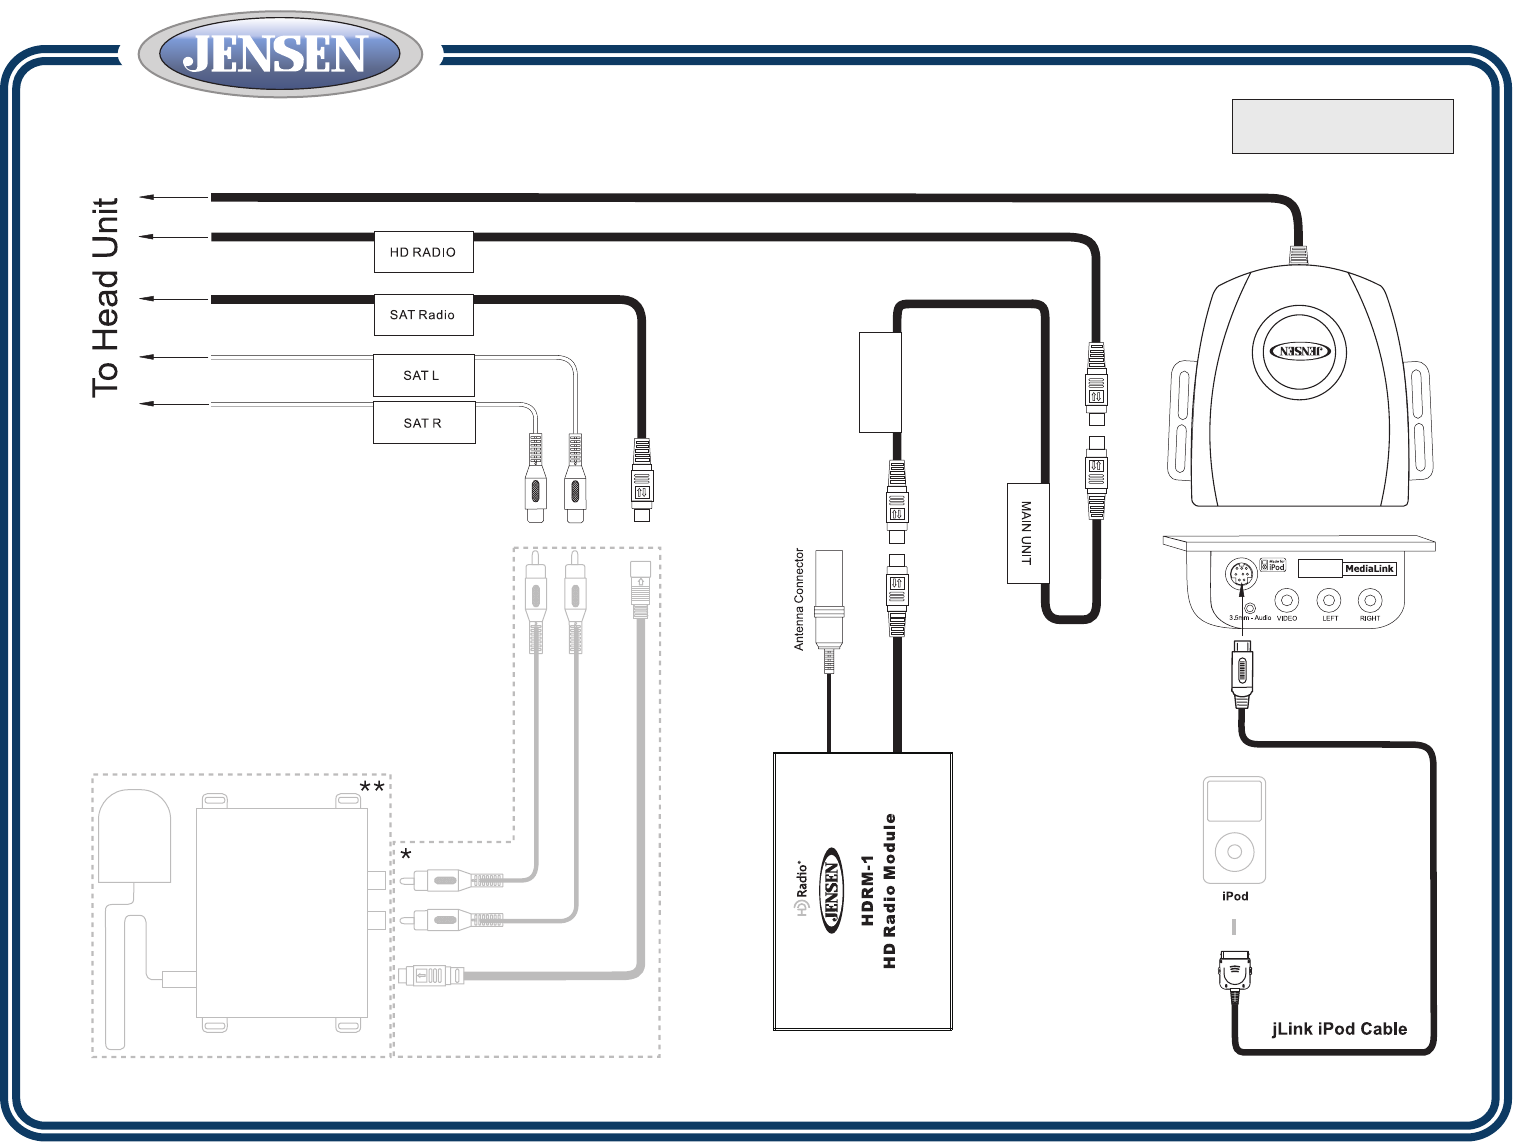 42e91d9c eeb6 4c84 87f1 47a14f3dc462 bg2 page 2 of jensen car video system xmdjen100 user guide jensen phase linear uv10 wiring diagram at panicattacktreatment.co